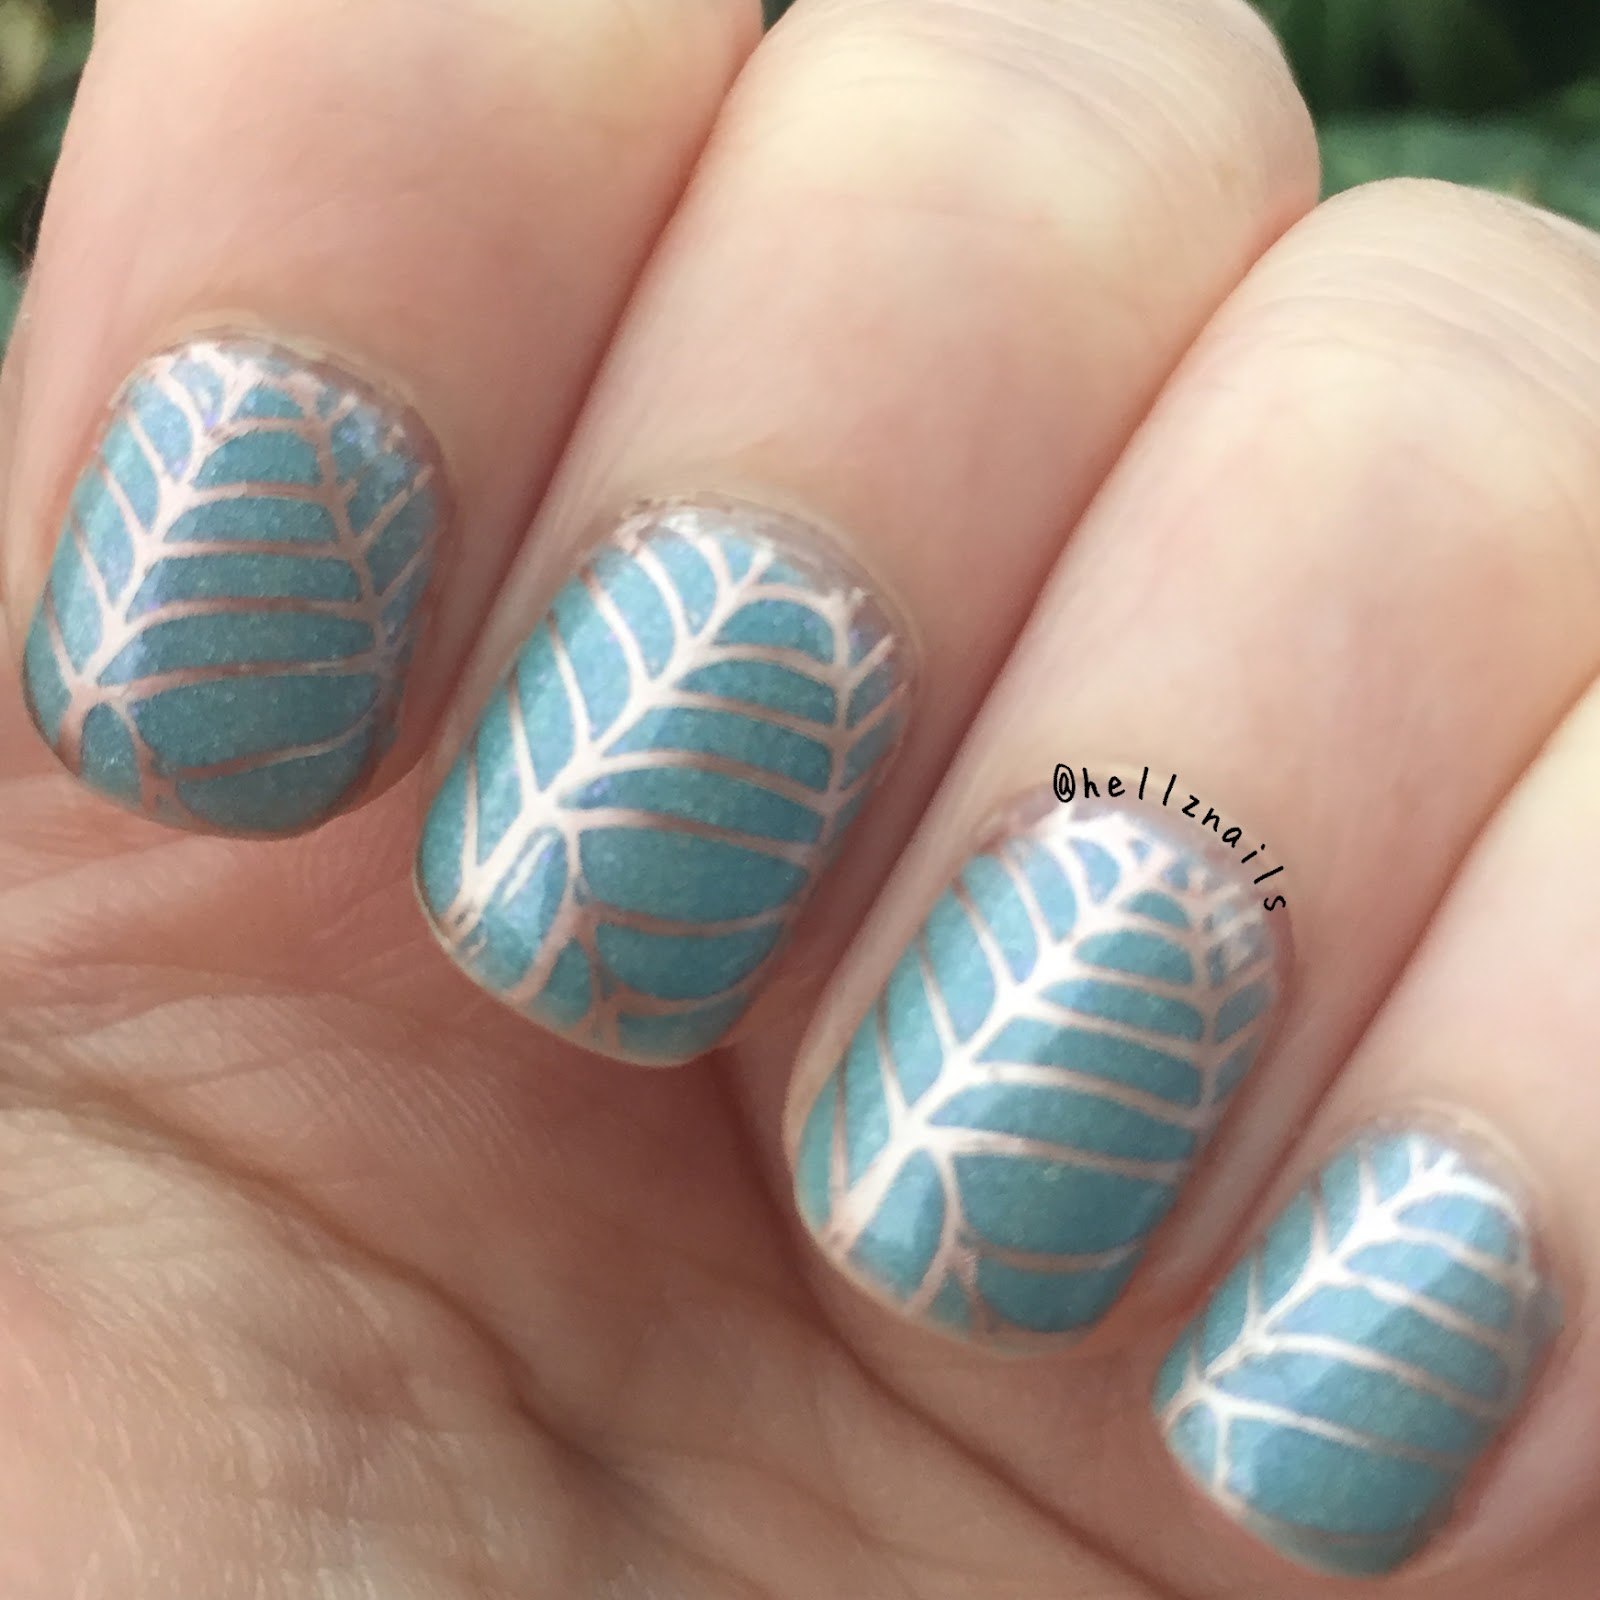 Subtle spring stamping nail art hellz nails spring stamping nail art fair maiden lake nokomis models own rose gold mo prinsesfo Images